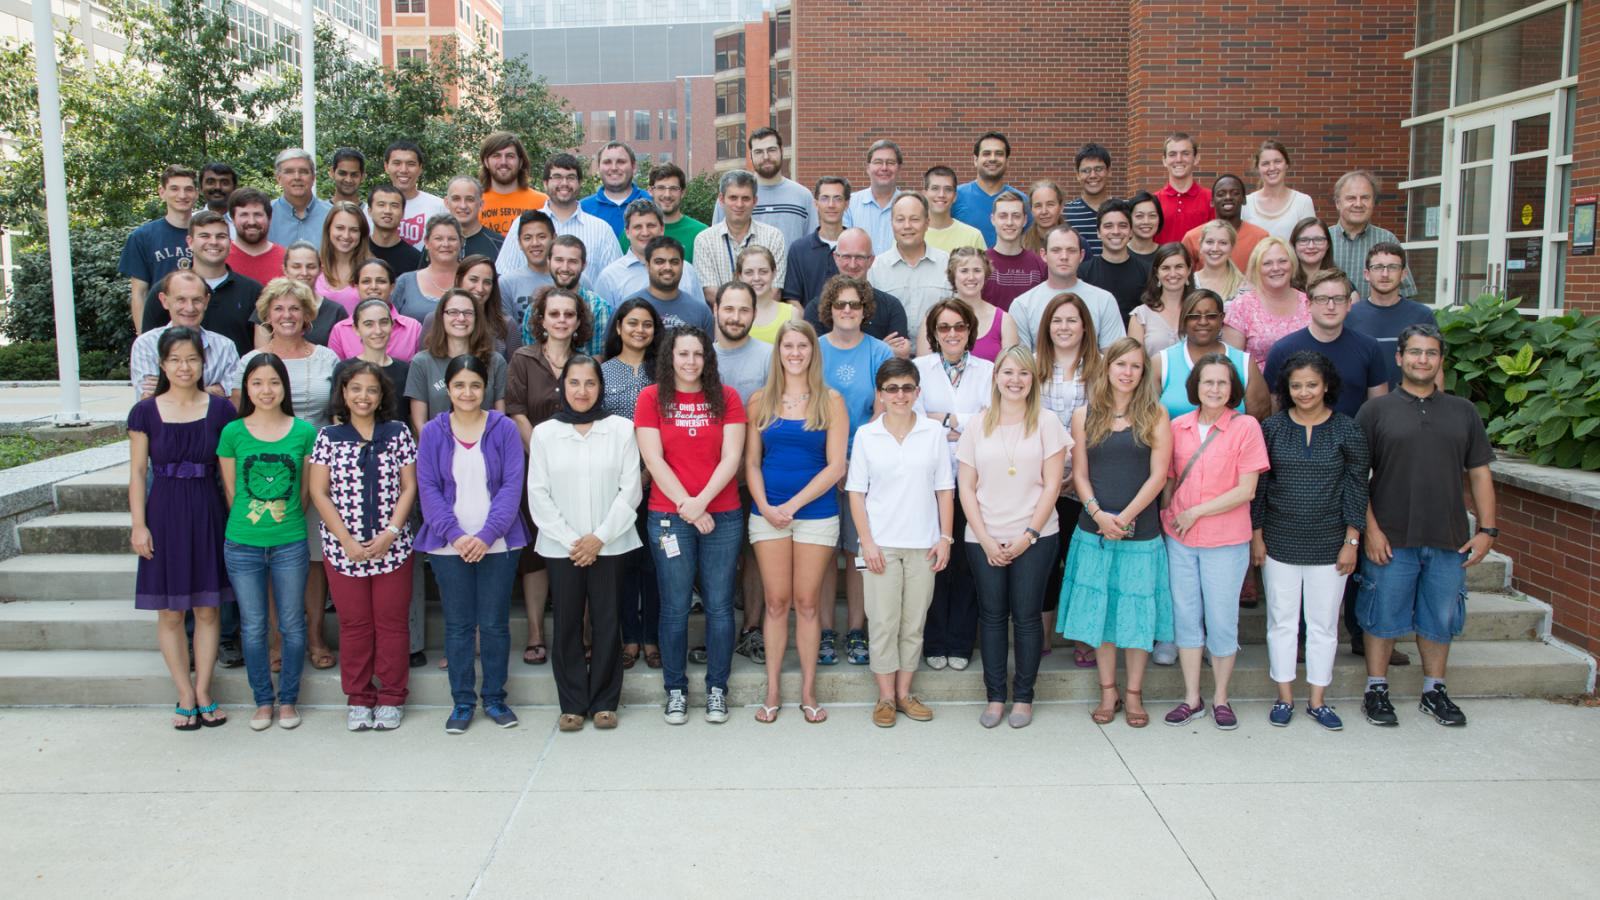 Microbiology Group Photo, August 2014